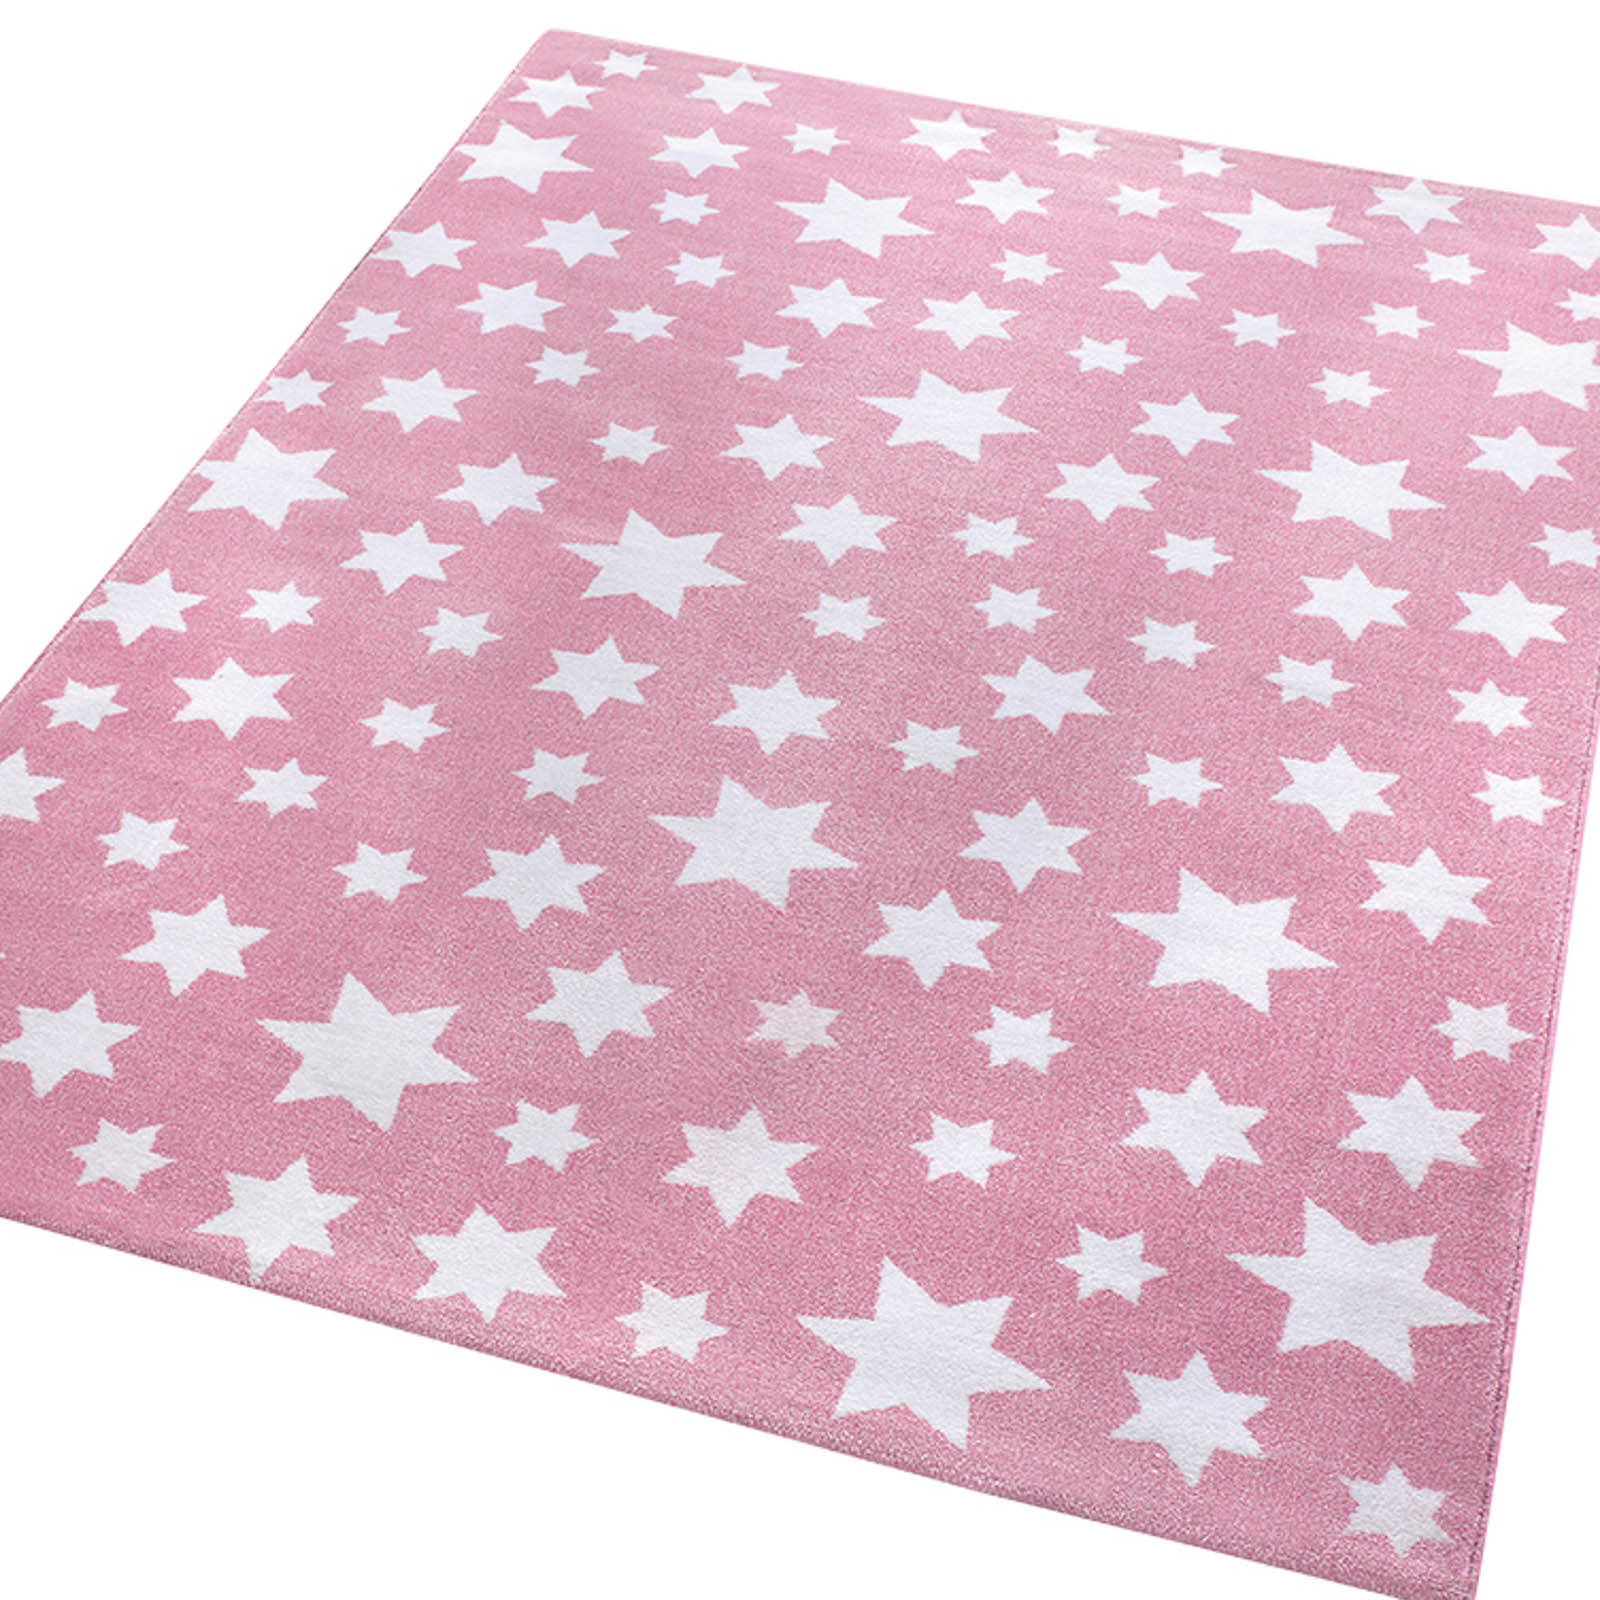 Weconhome Jeans Star Rugs 0705 04